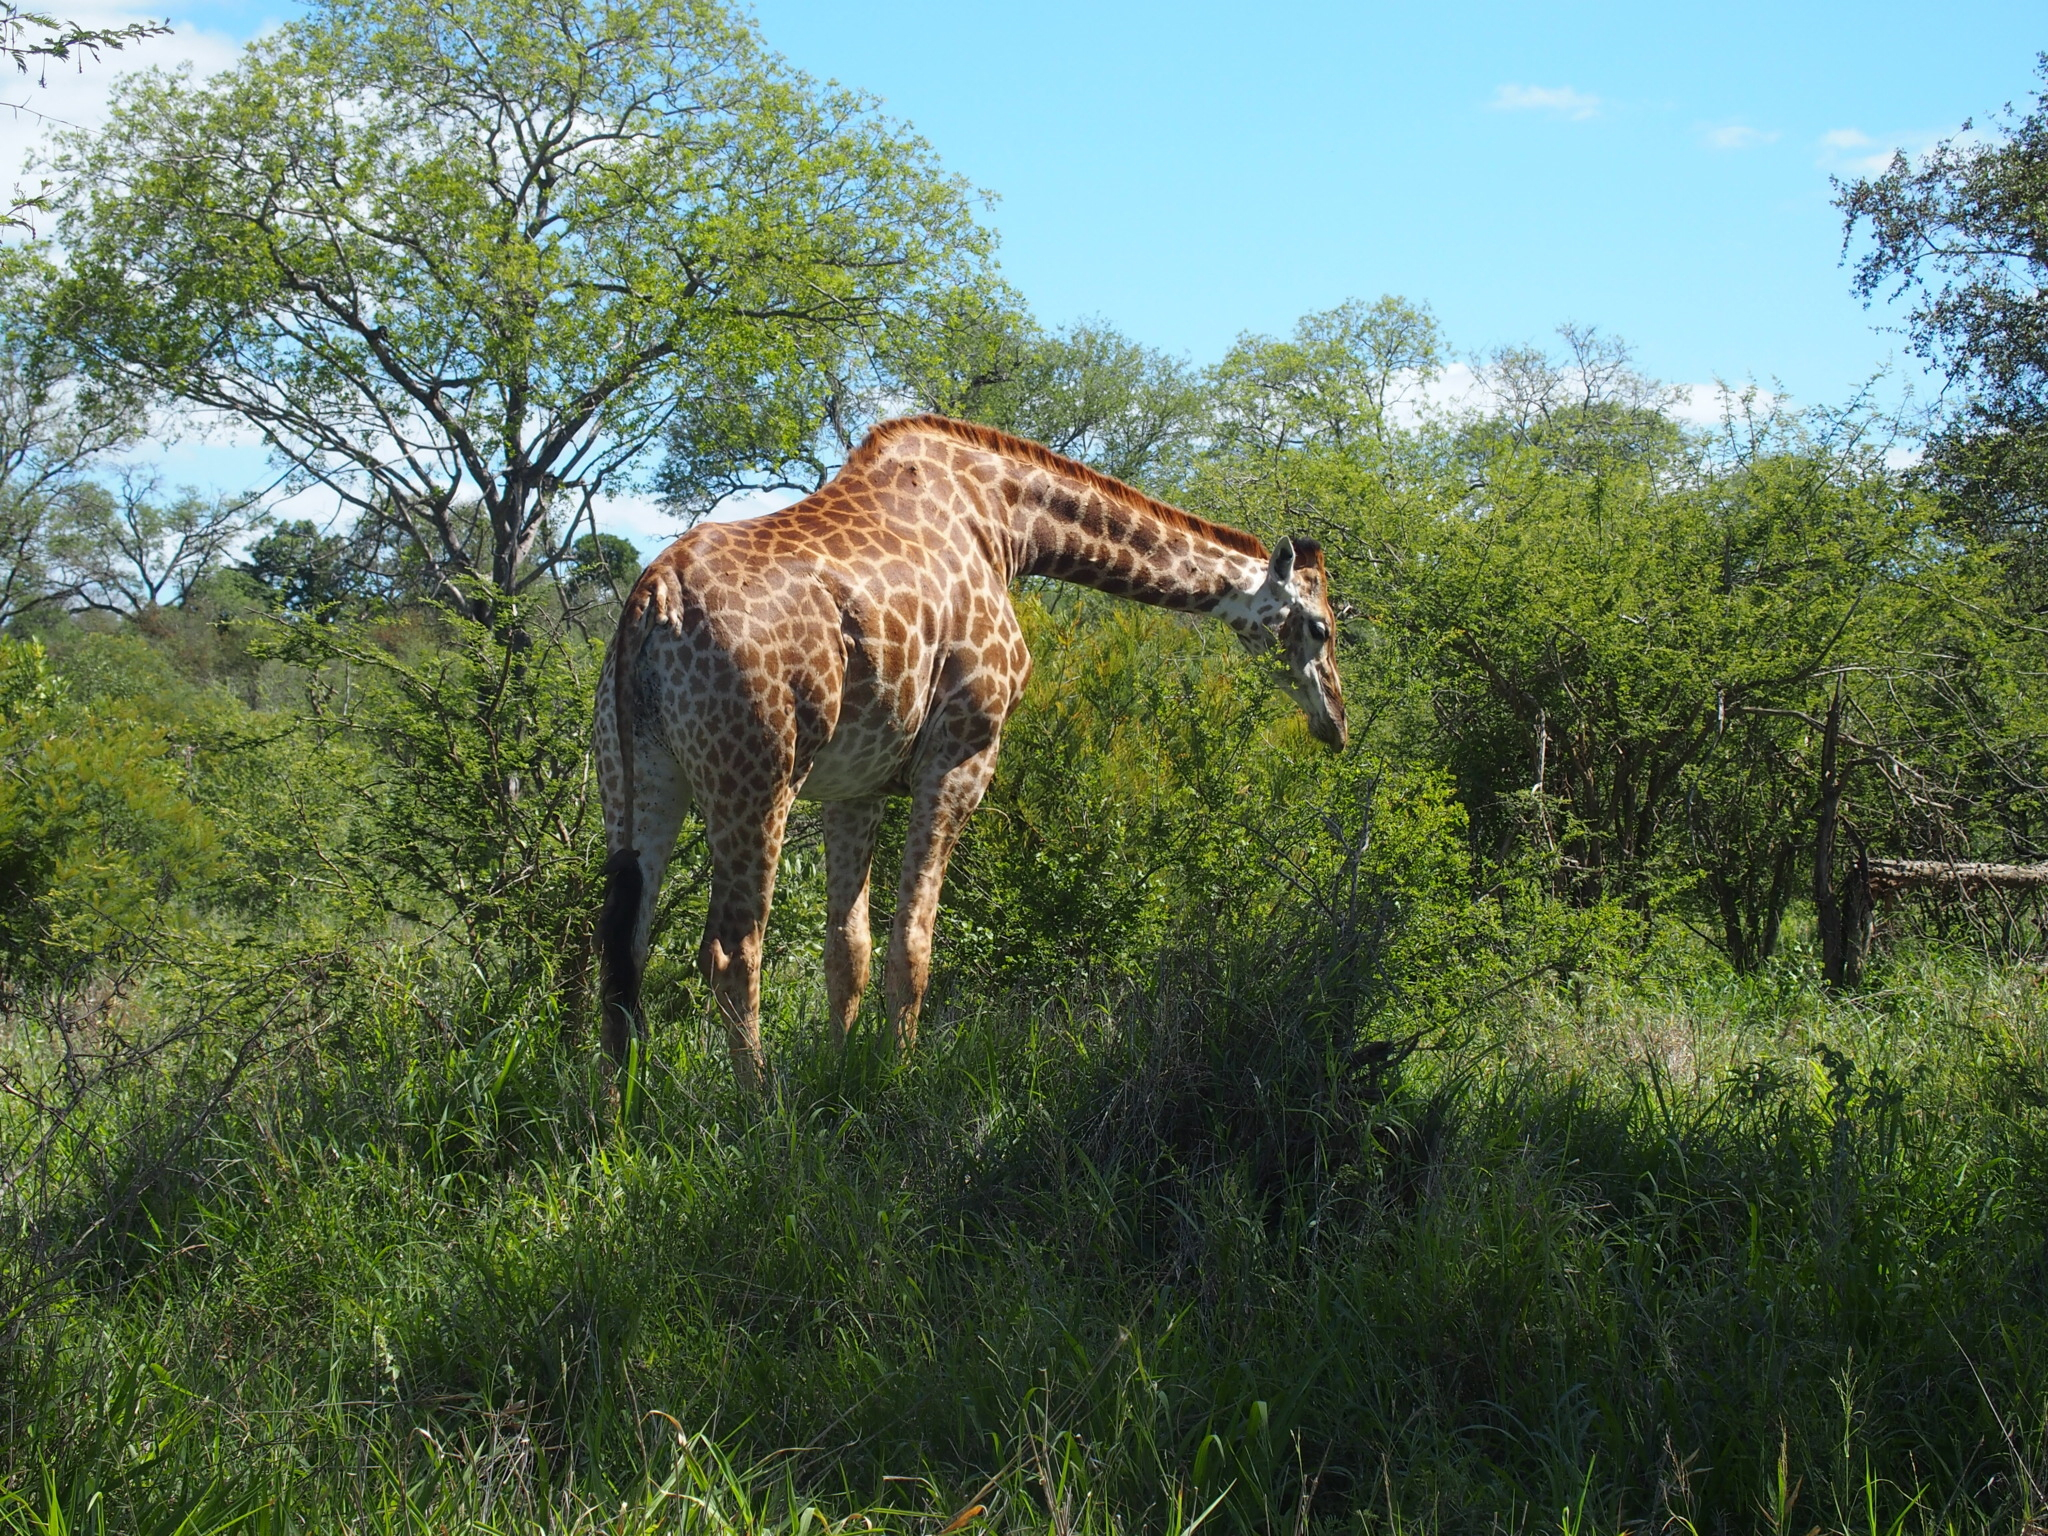 Giraffes are as graceful as one might imagine.